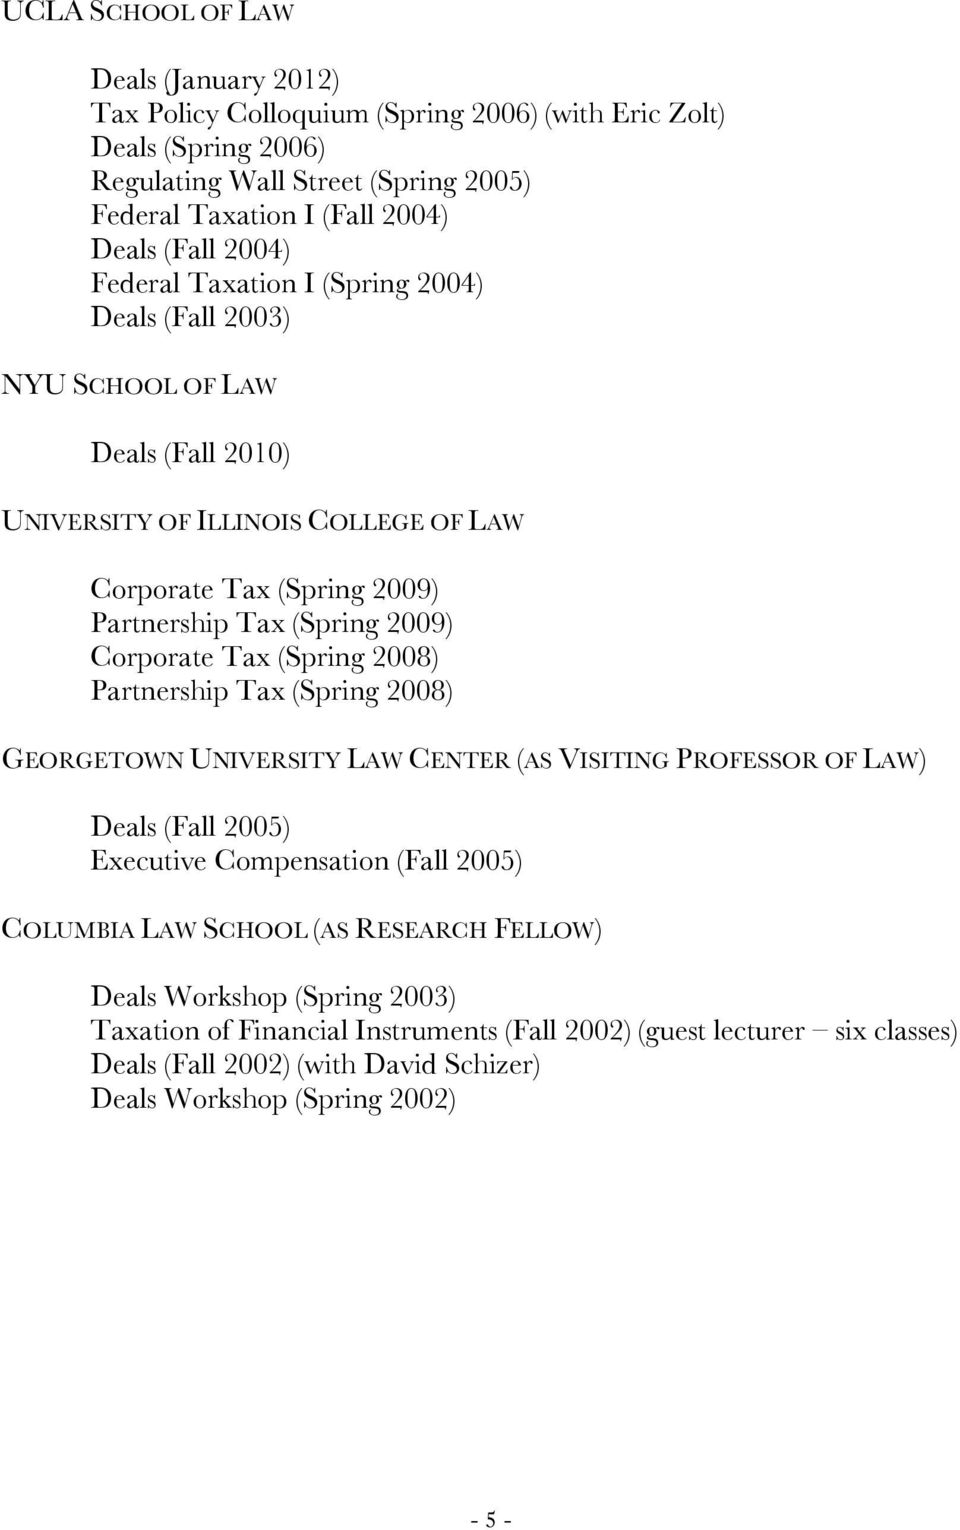 Corporate Tax (Spring 2008) Partnership Tax (Spring 2008) GEORGETOWN UNIVERSITY LAW CENTER (AS VISITING PROFESSOR OF LAW) Deals (Fall 2005) Executive Compensation (Fall 2005) COLUMBIA LAW